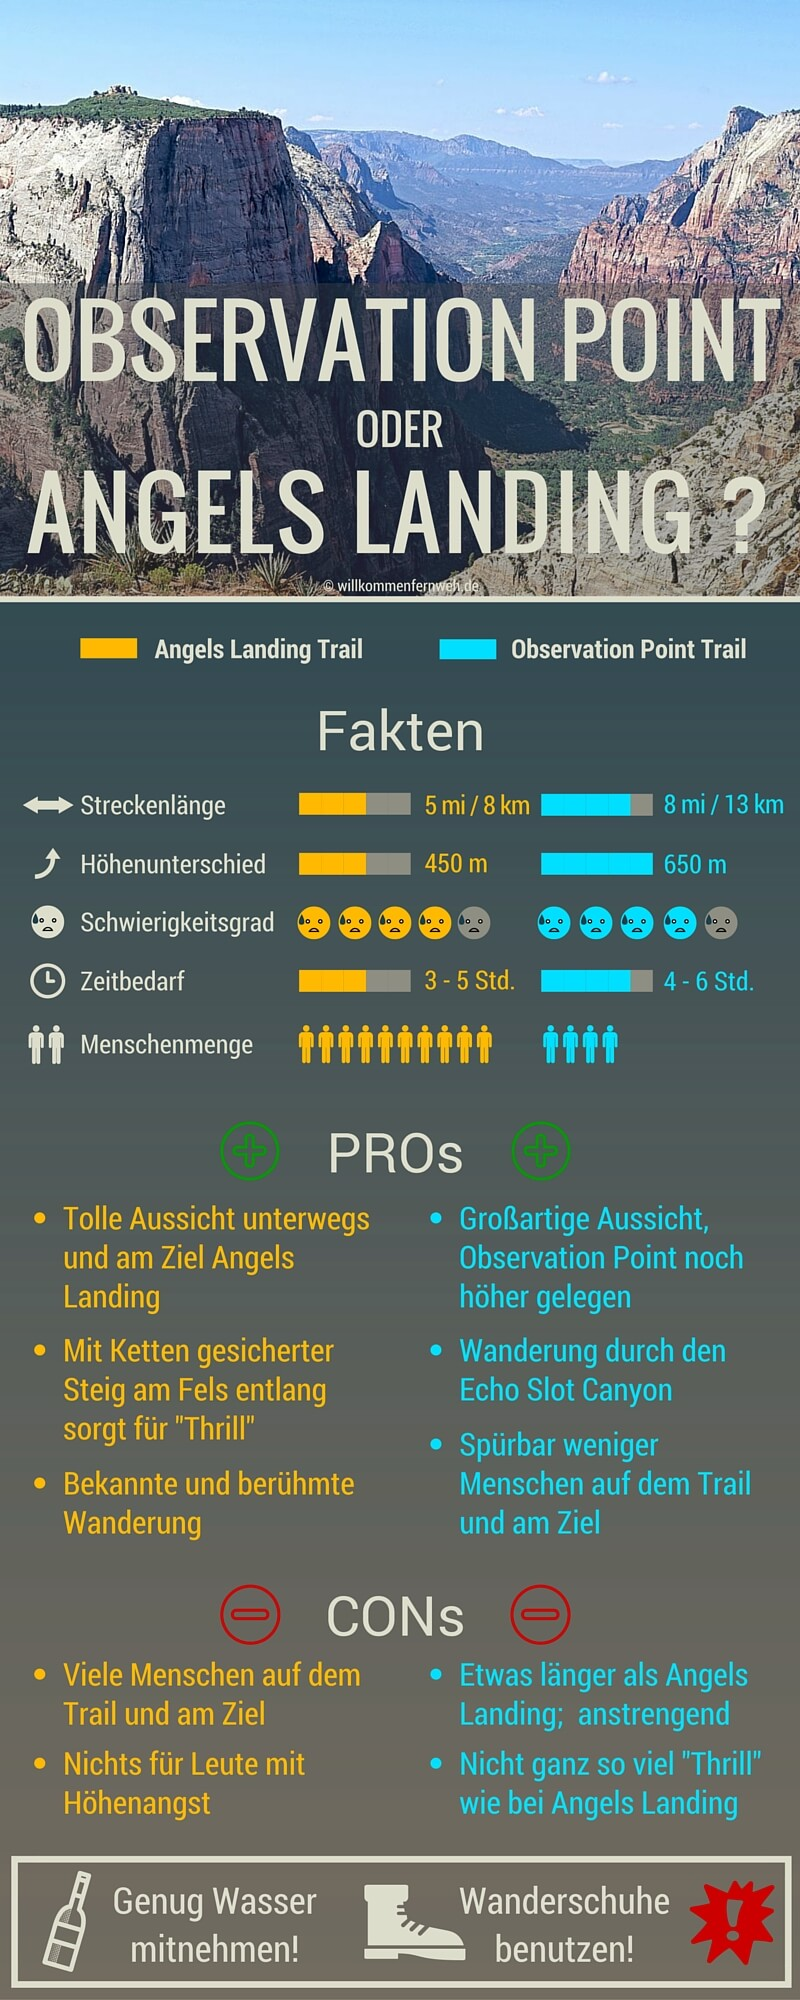 Infografik Observation Point vs Angels Landing